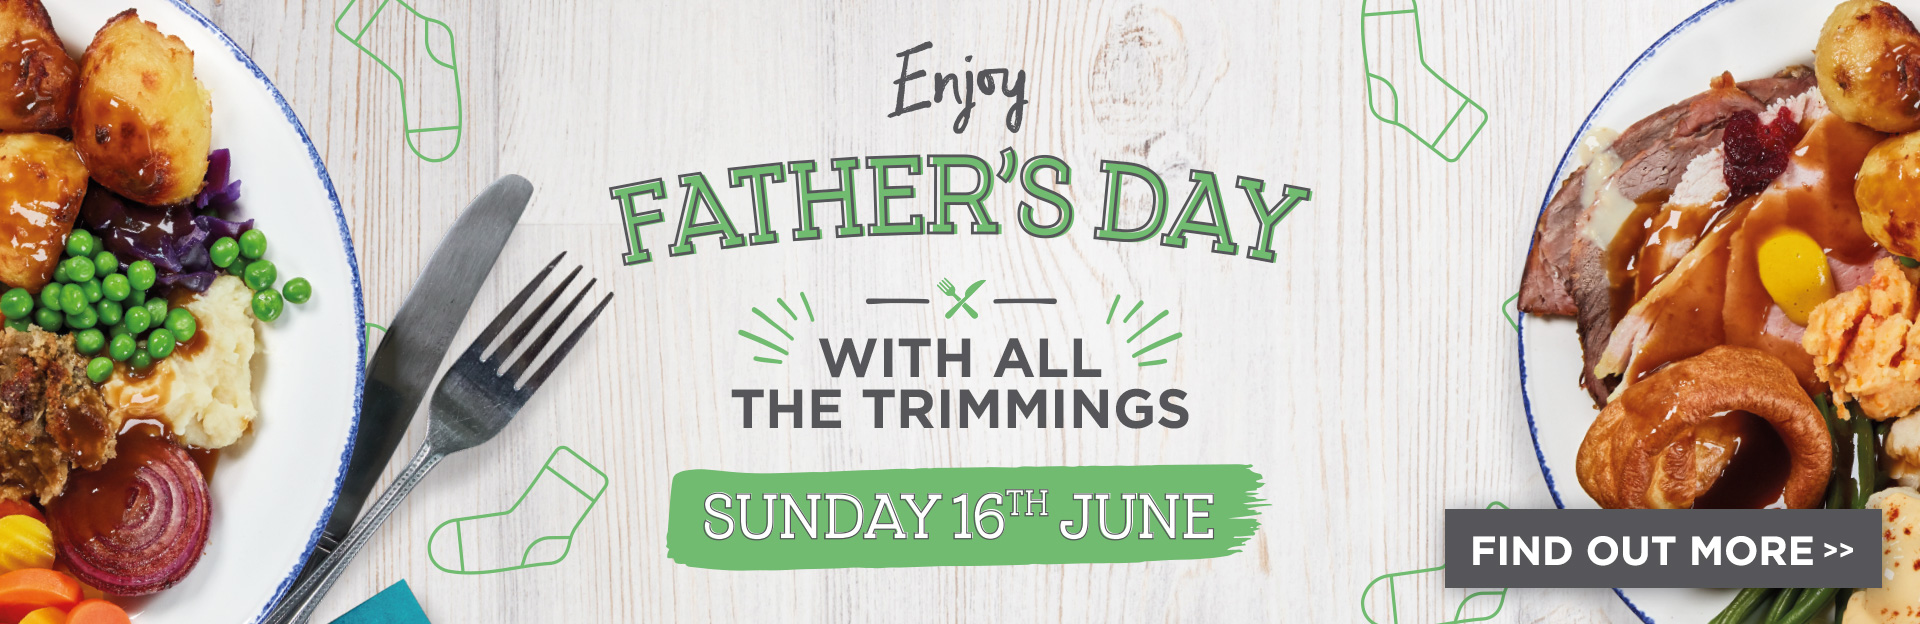 Father's Day at The Pretty Pigs